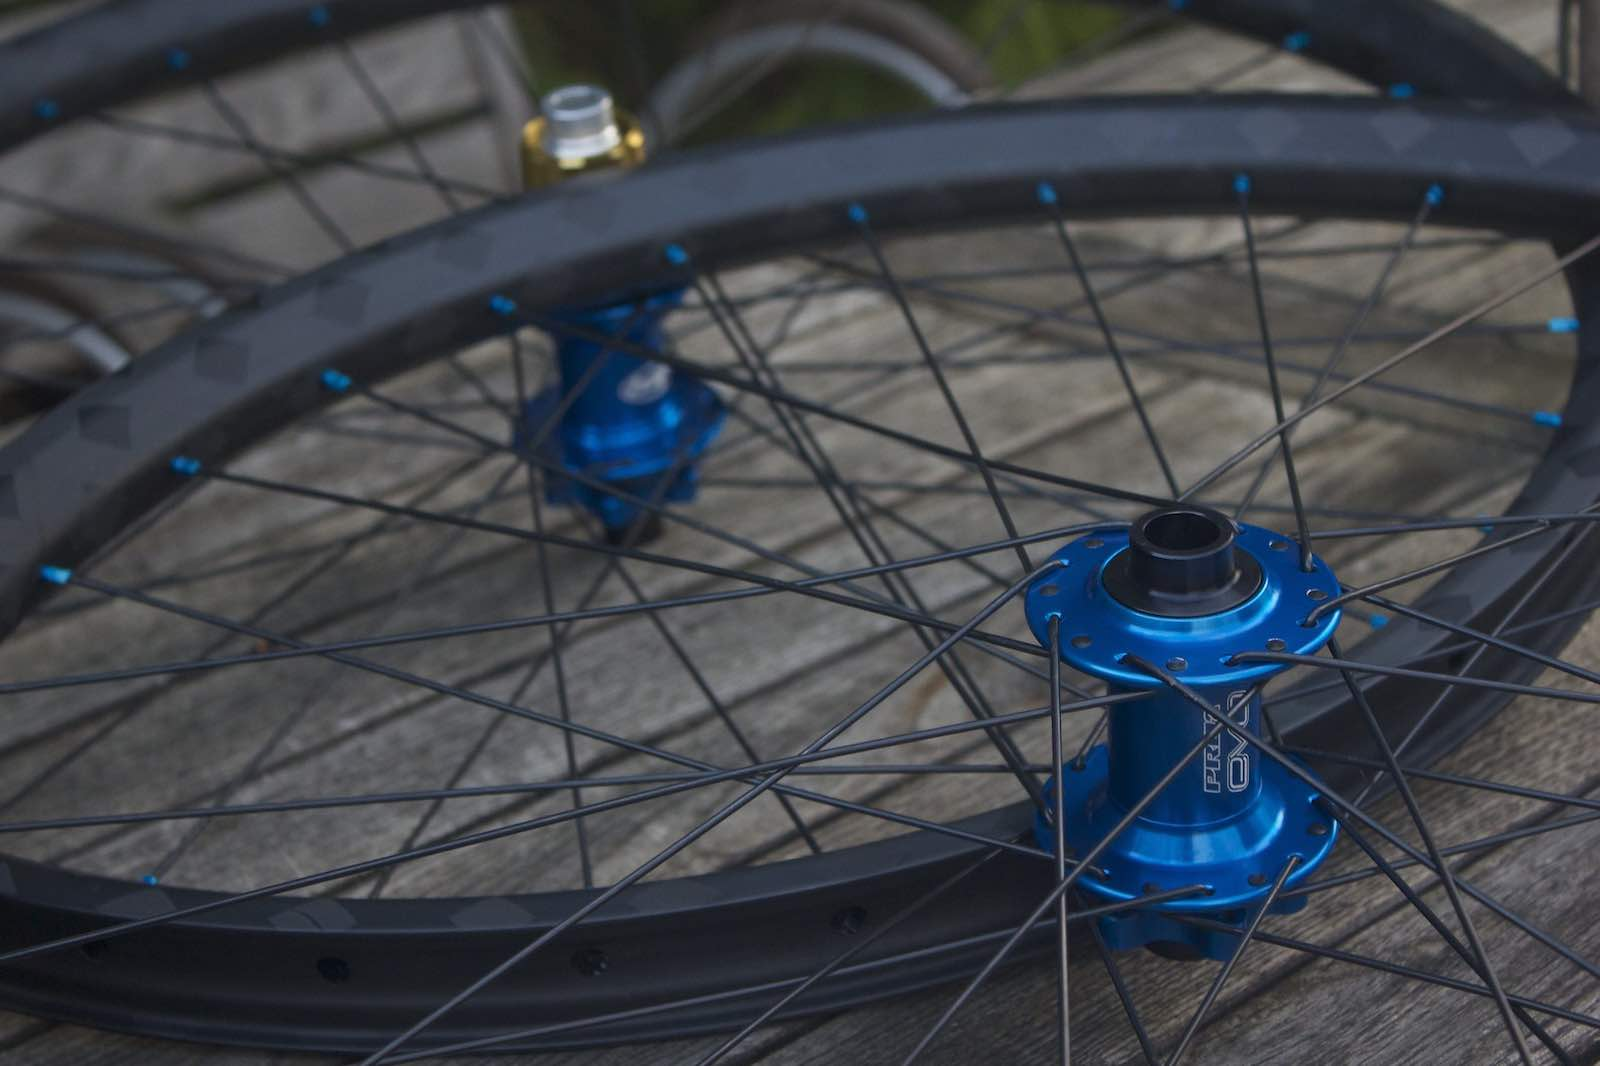 Hub and spokes (Photo: Vik Approved/Flickr)